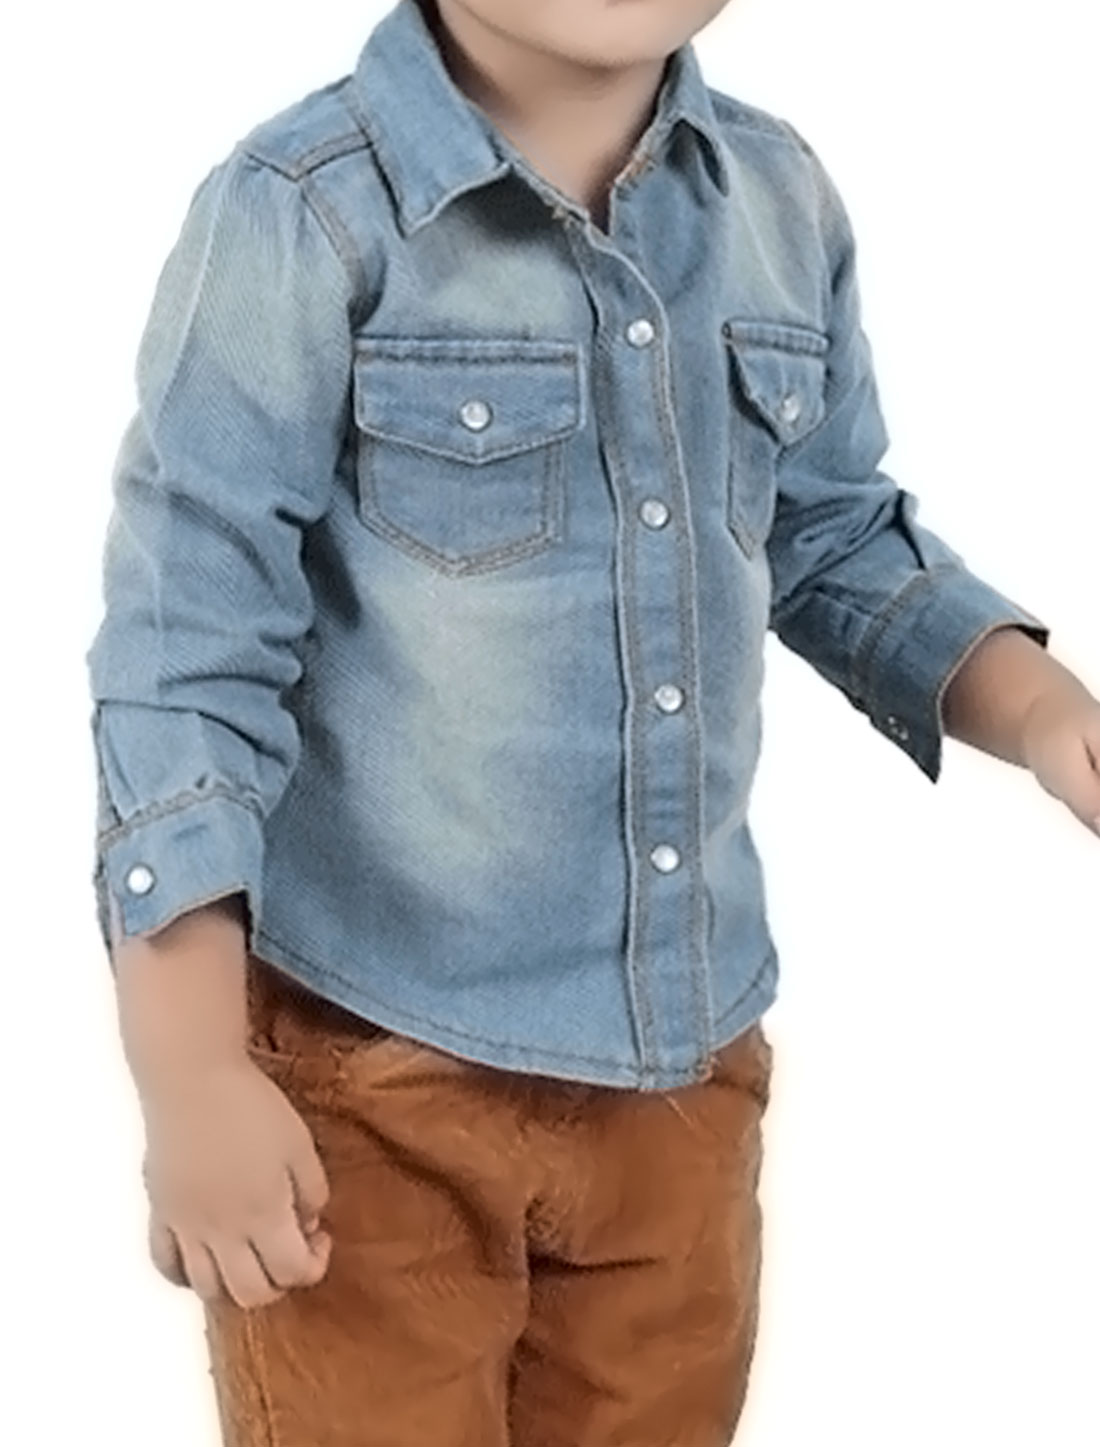 Boys Snap Button Fastener Round Hem Casual Denim Shirt Allegra Kids Blue 5